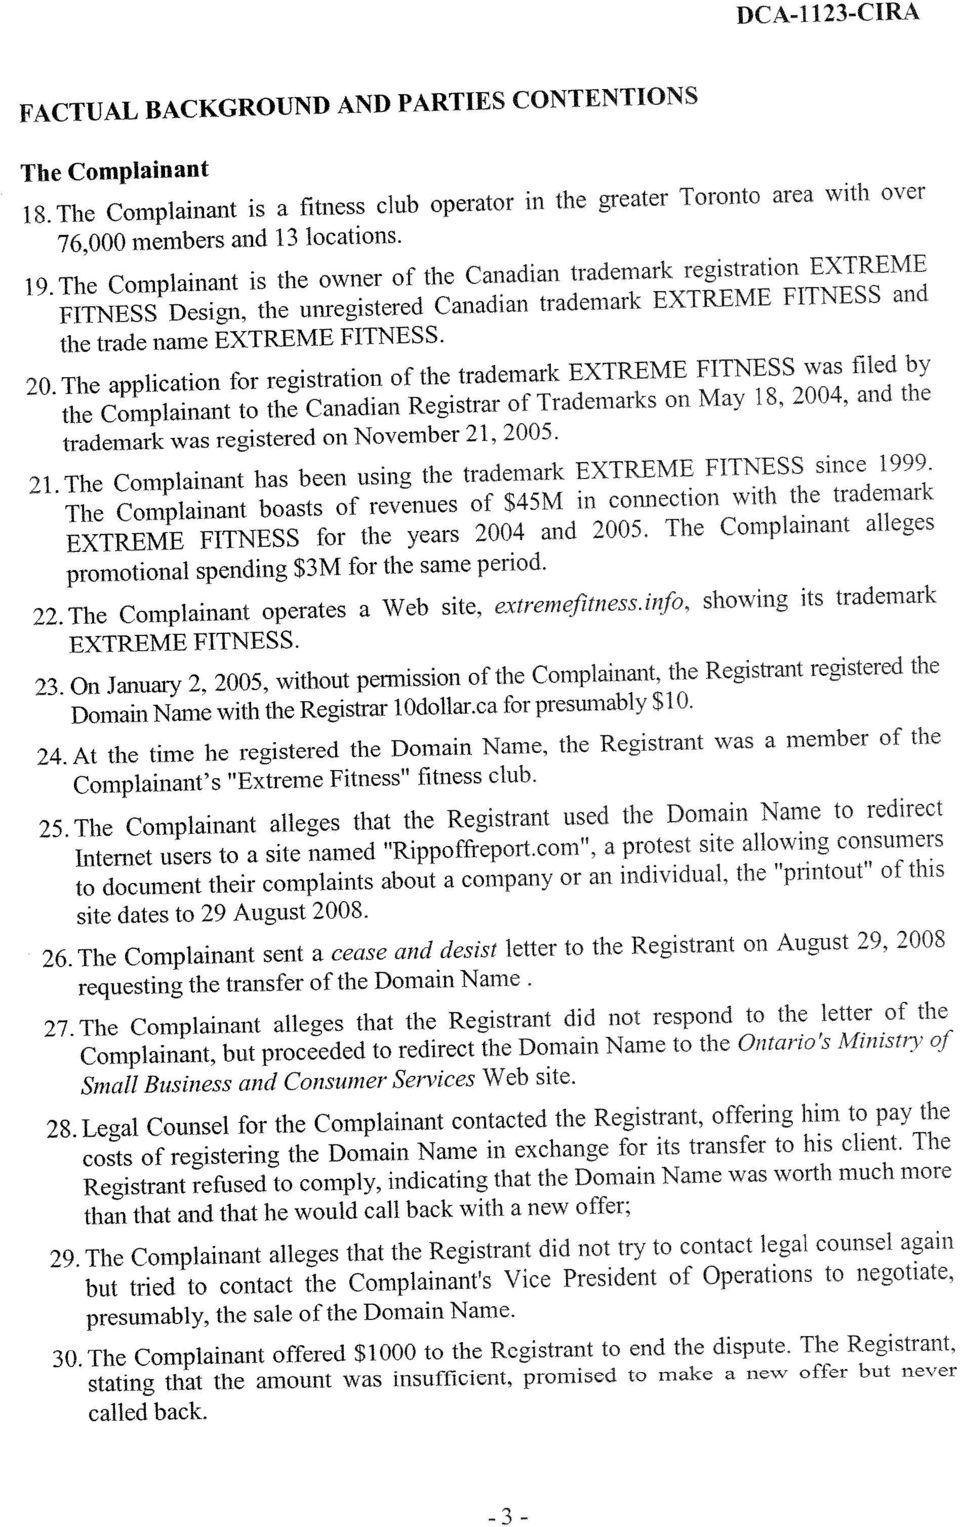 The application for registration of the trademark EXTREME FITNESS was filed by the Complainant to the Canadian Registrar of Trademarks on May 18, 2004, and the trademark was registered on November